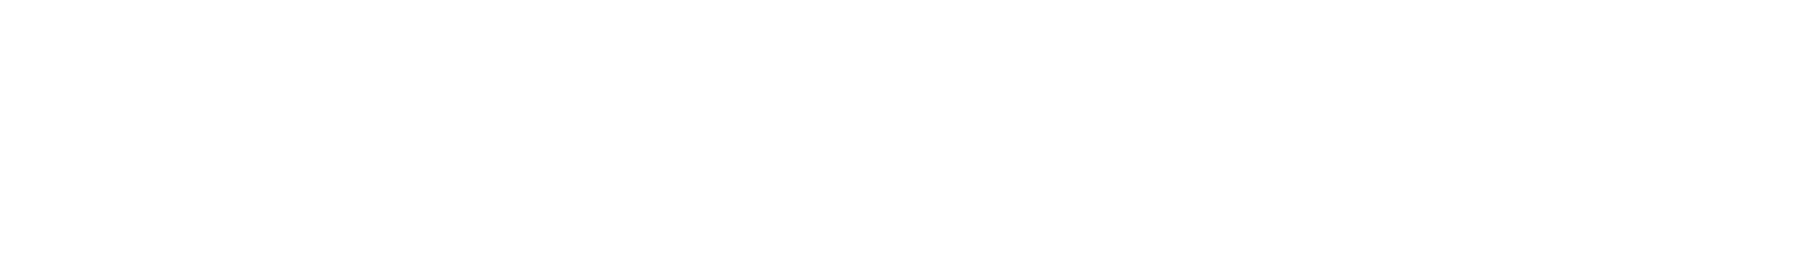 vocal stab 01